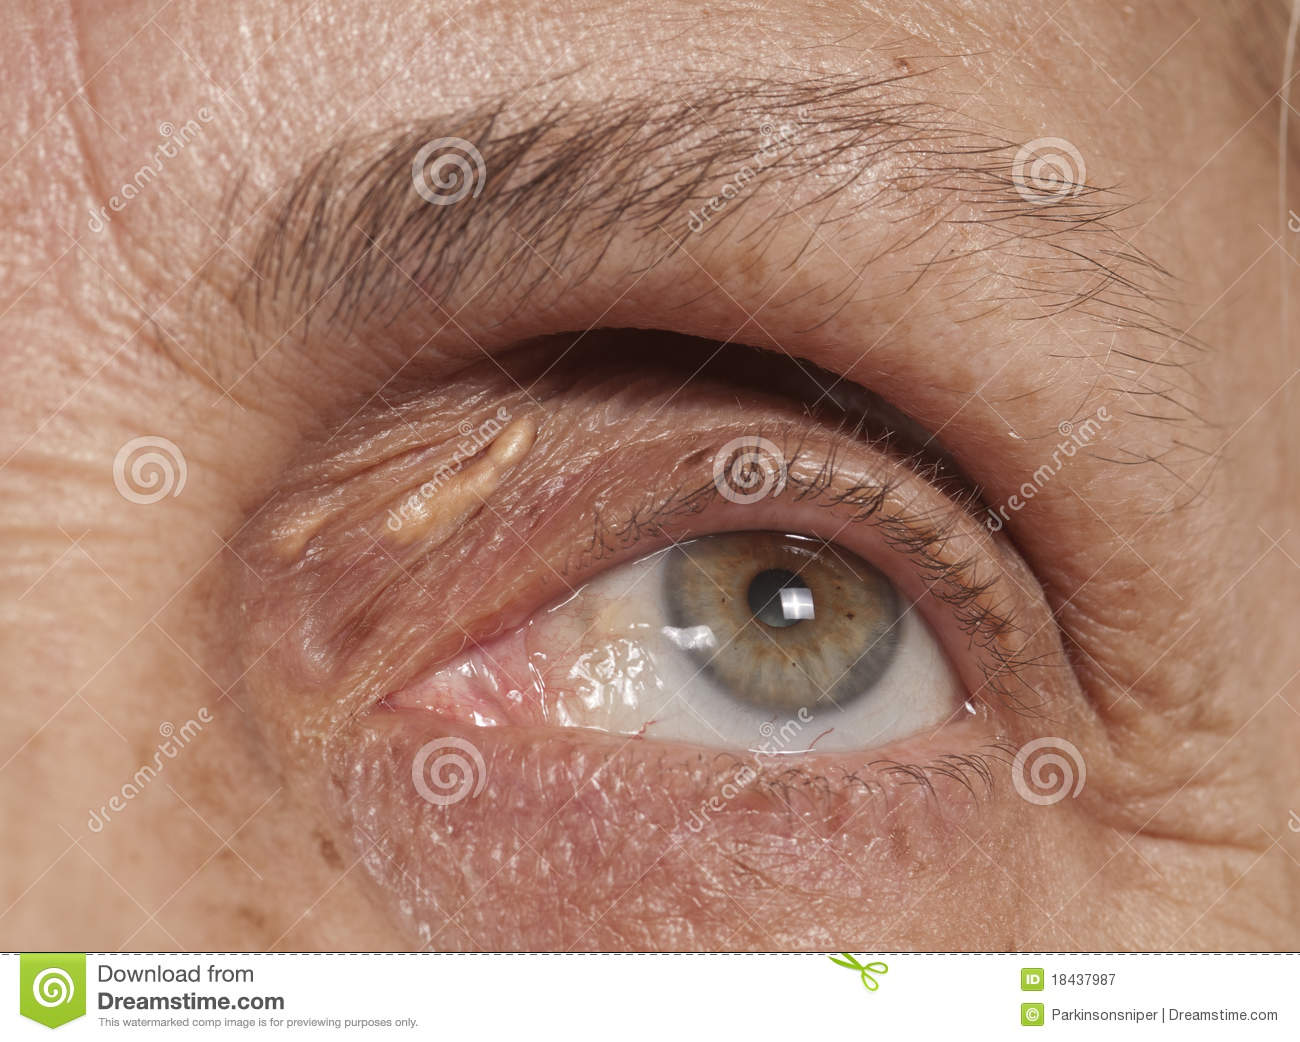 Herpes...Of the Eye!